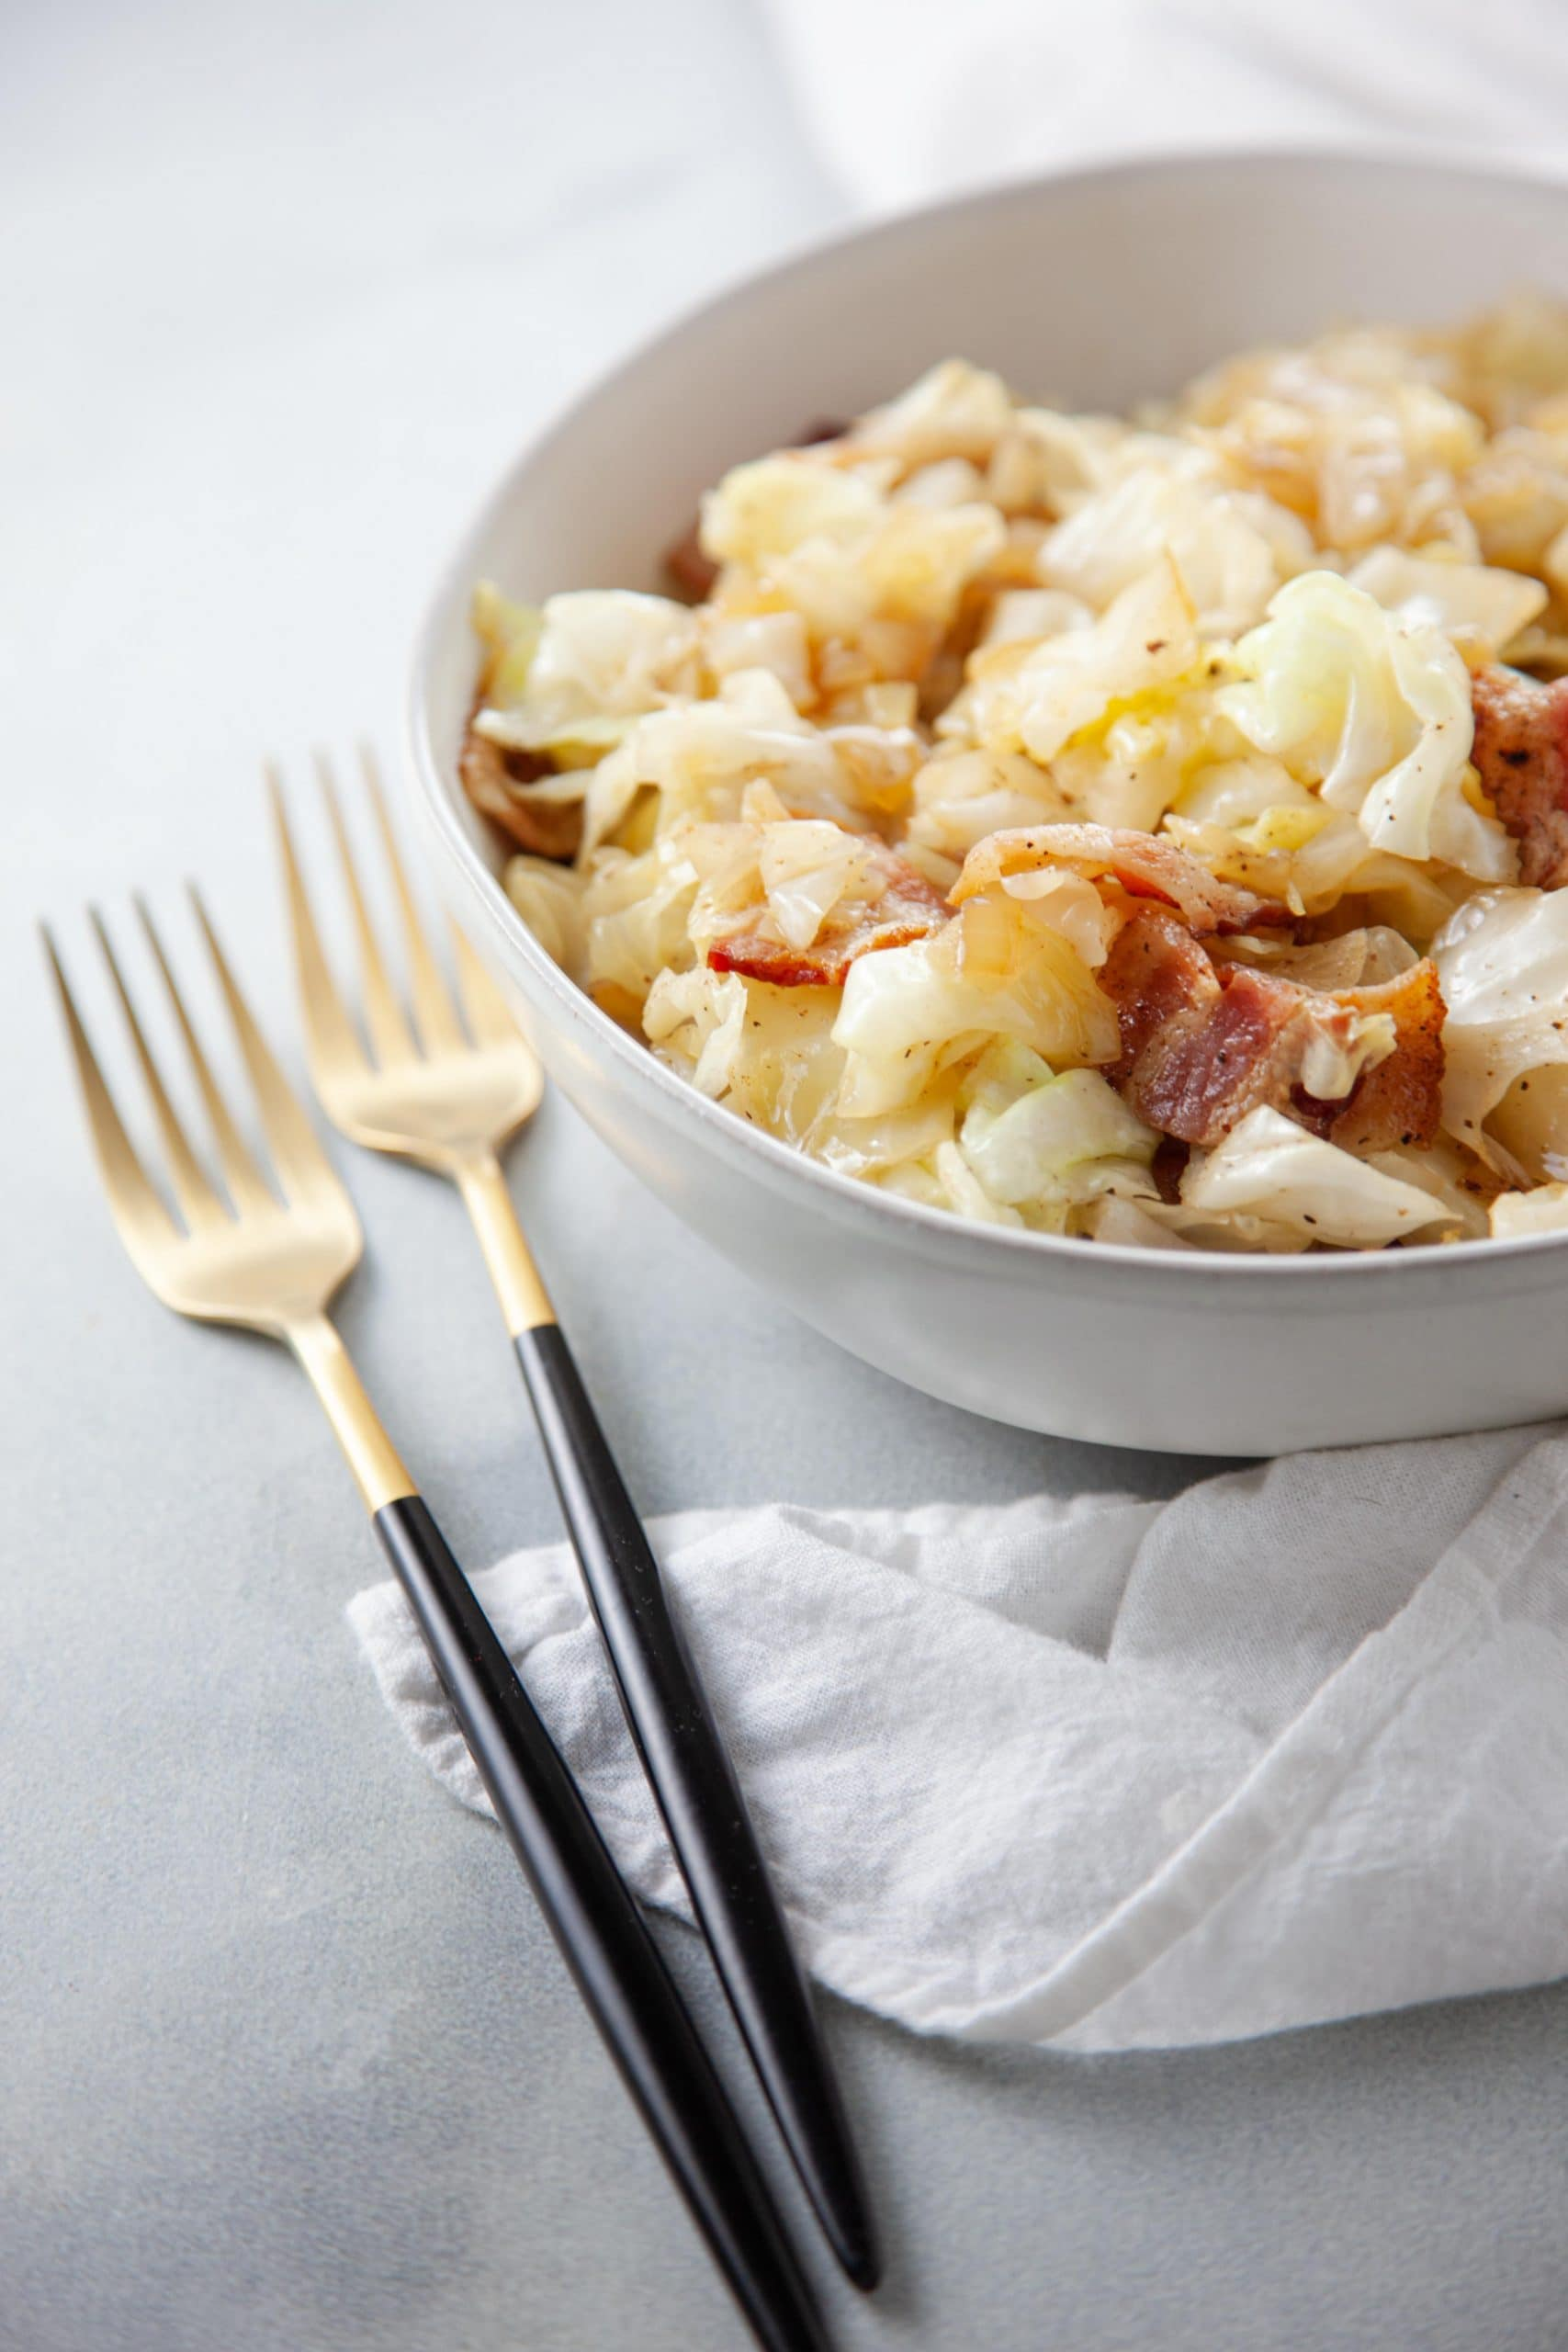 Southern Fried Cabbage and Bacon in a white dish with black and gold silverware.